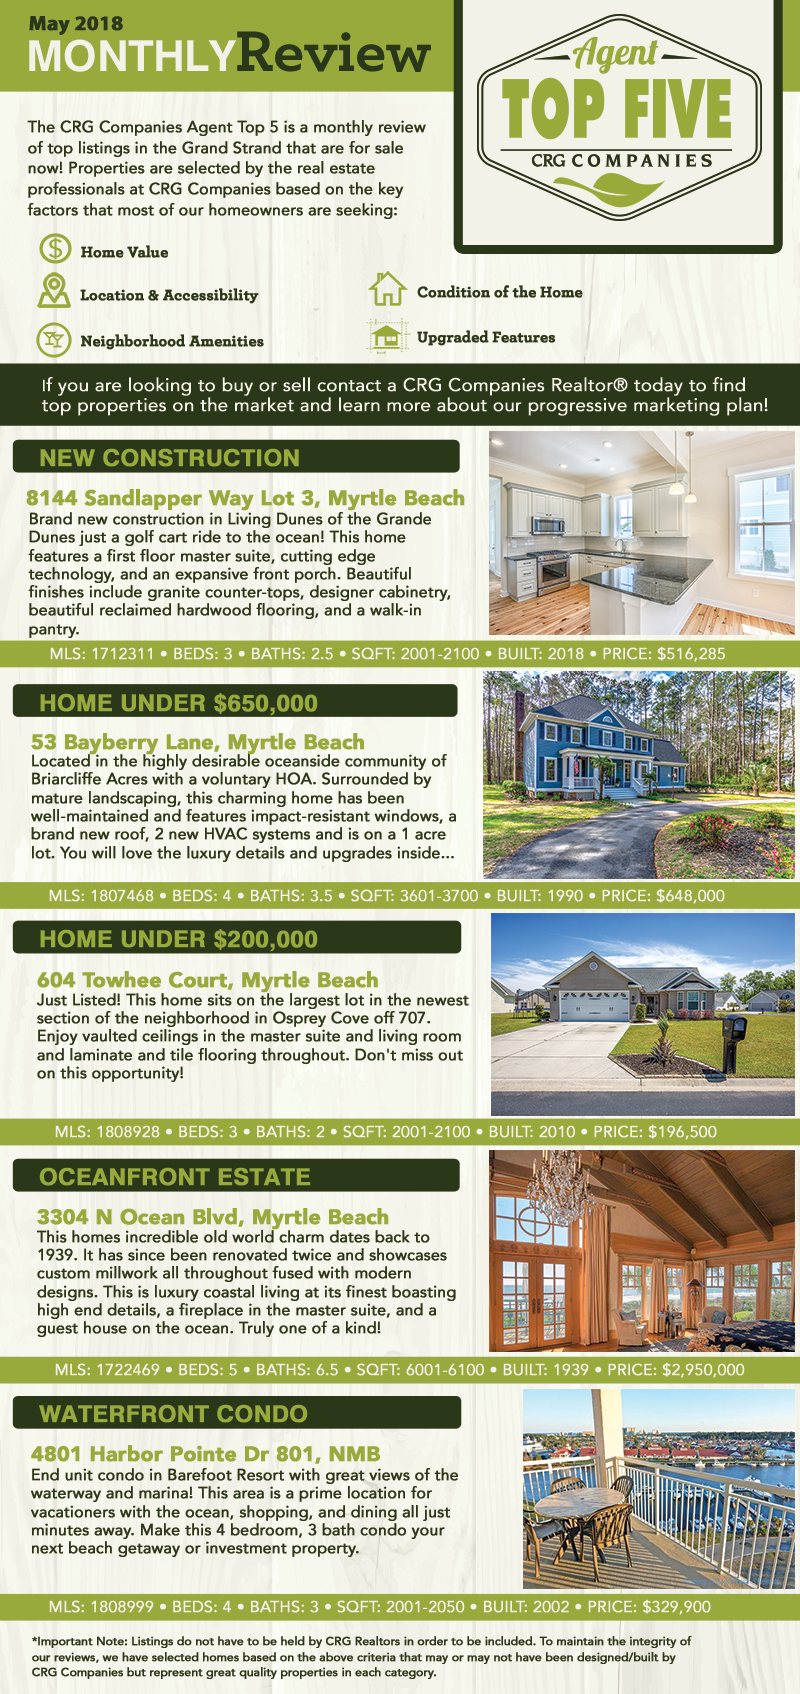 myrtle-beach-real-estate-top-properties-for-sale